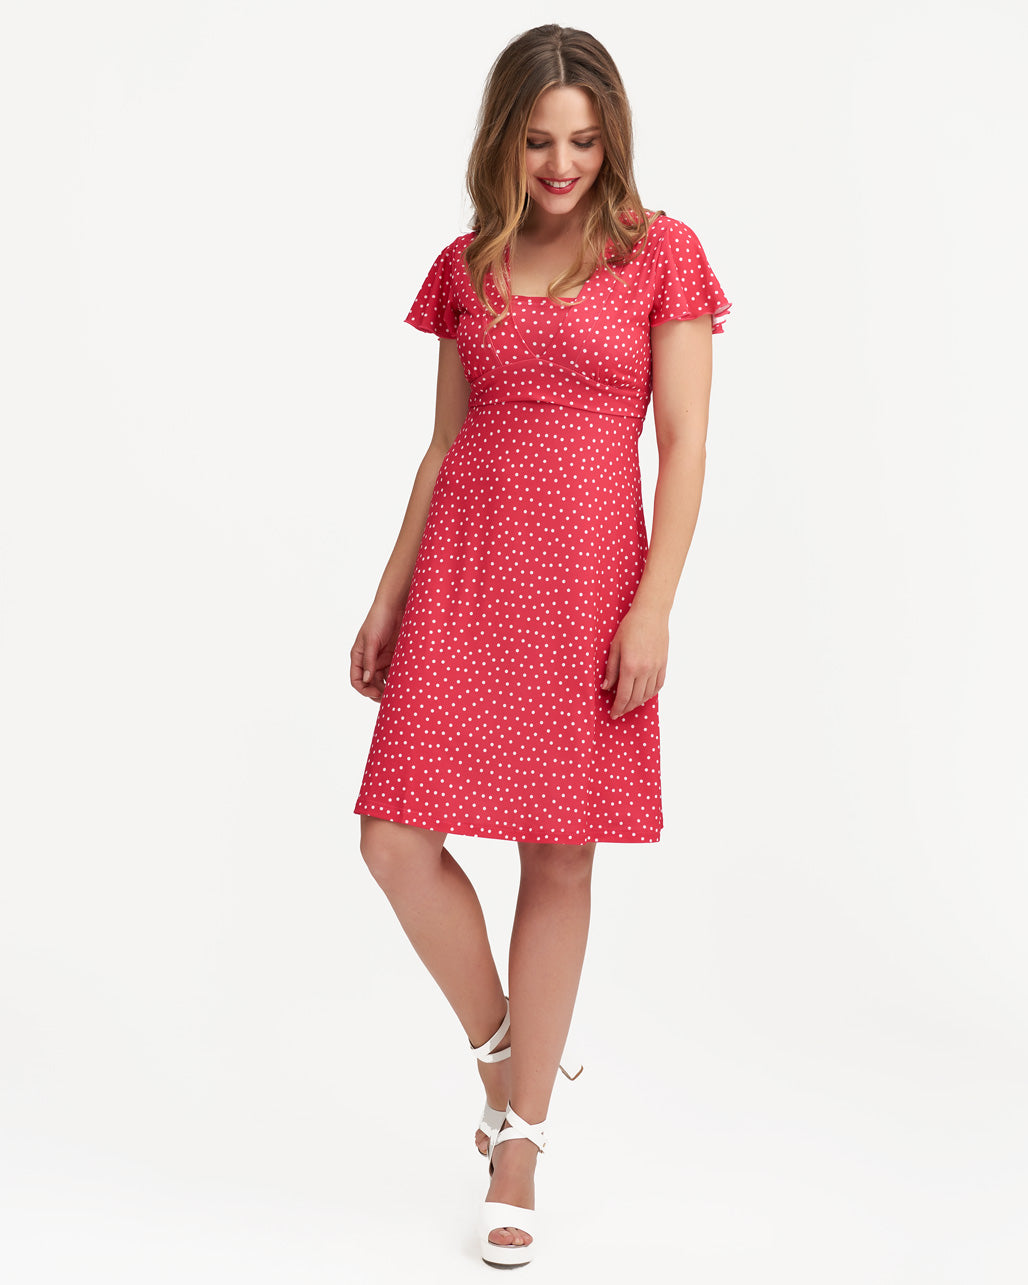 5138792e21c Raspberry Polkadot Va Va Voom Nursing Dress | Peachymama Australia